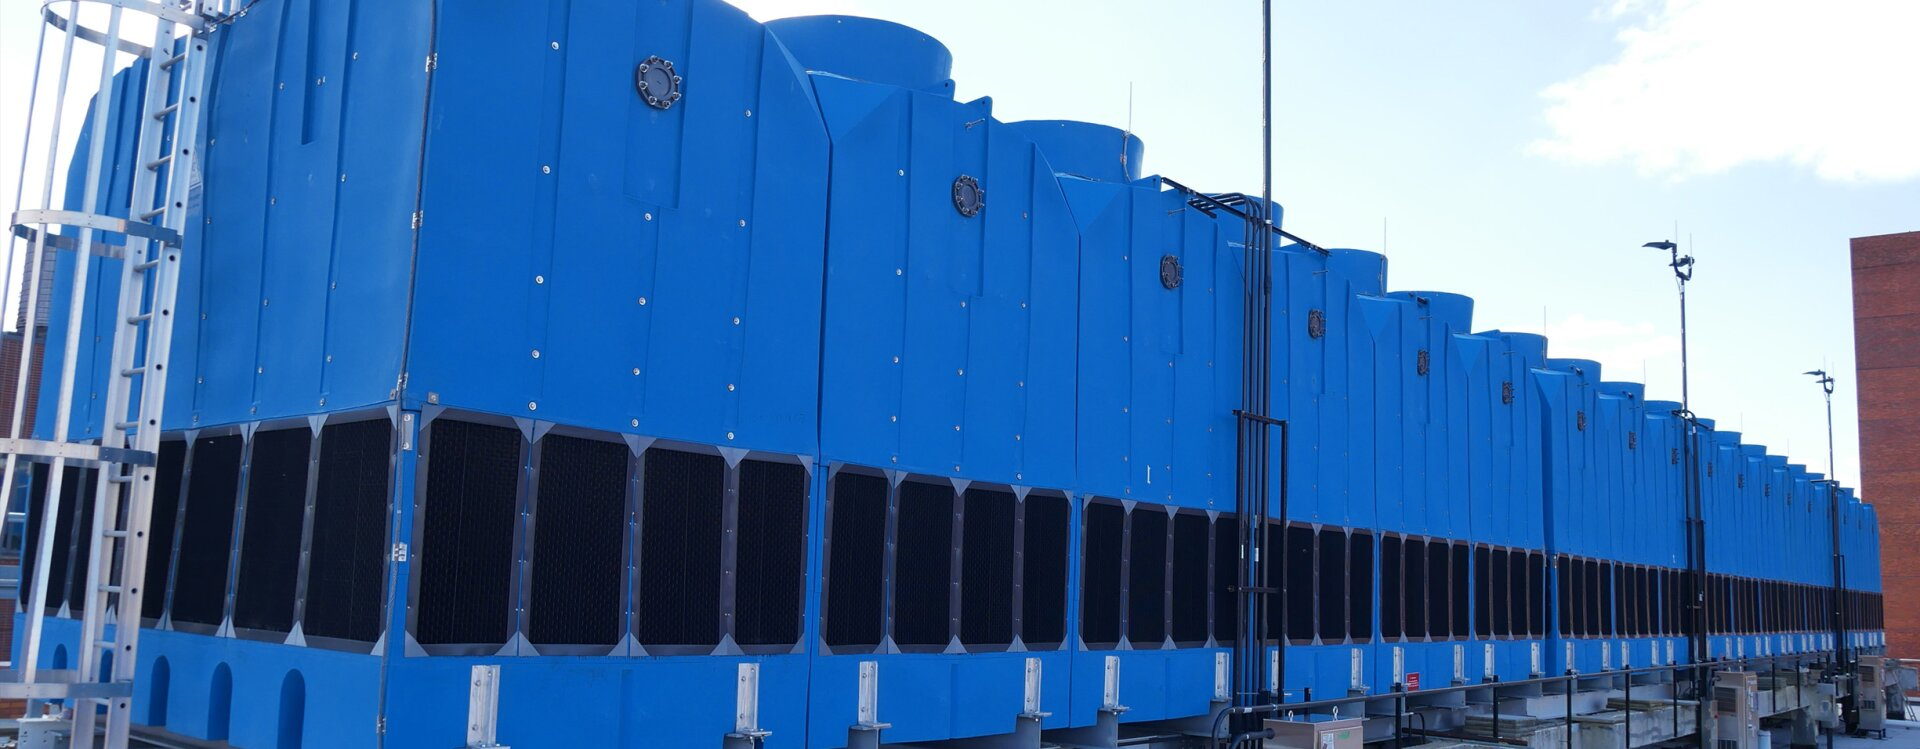 Anti-Microbial water cooling towers